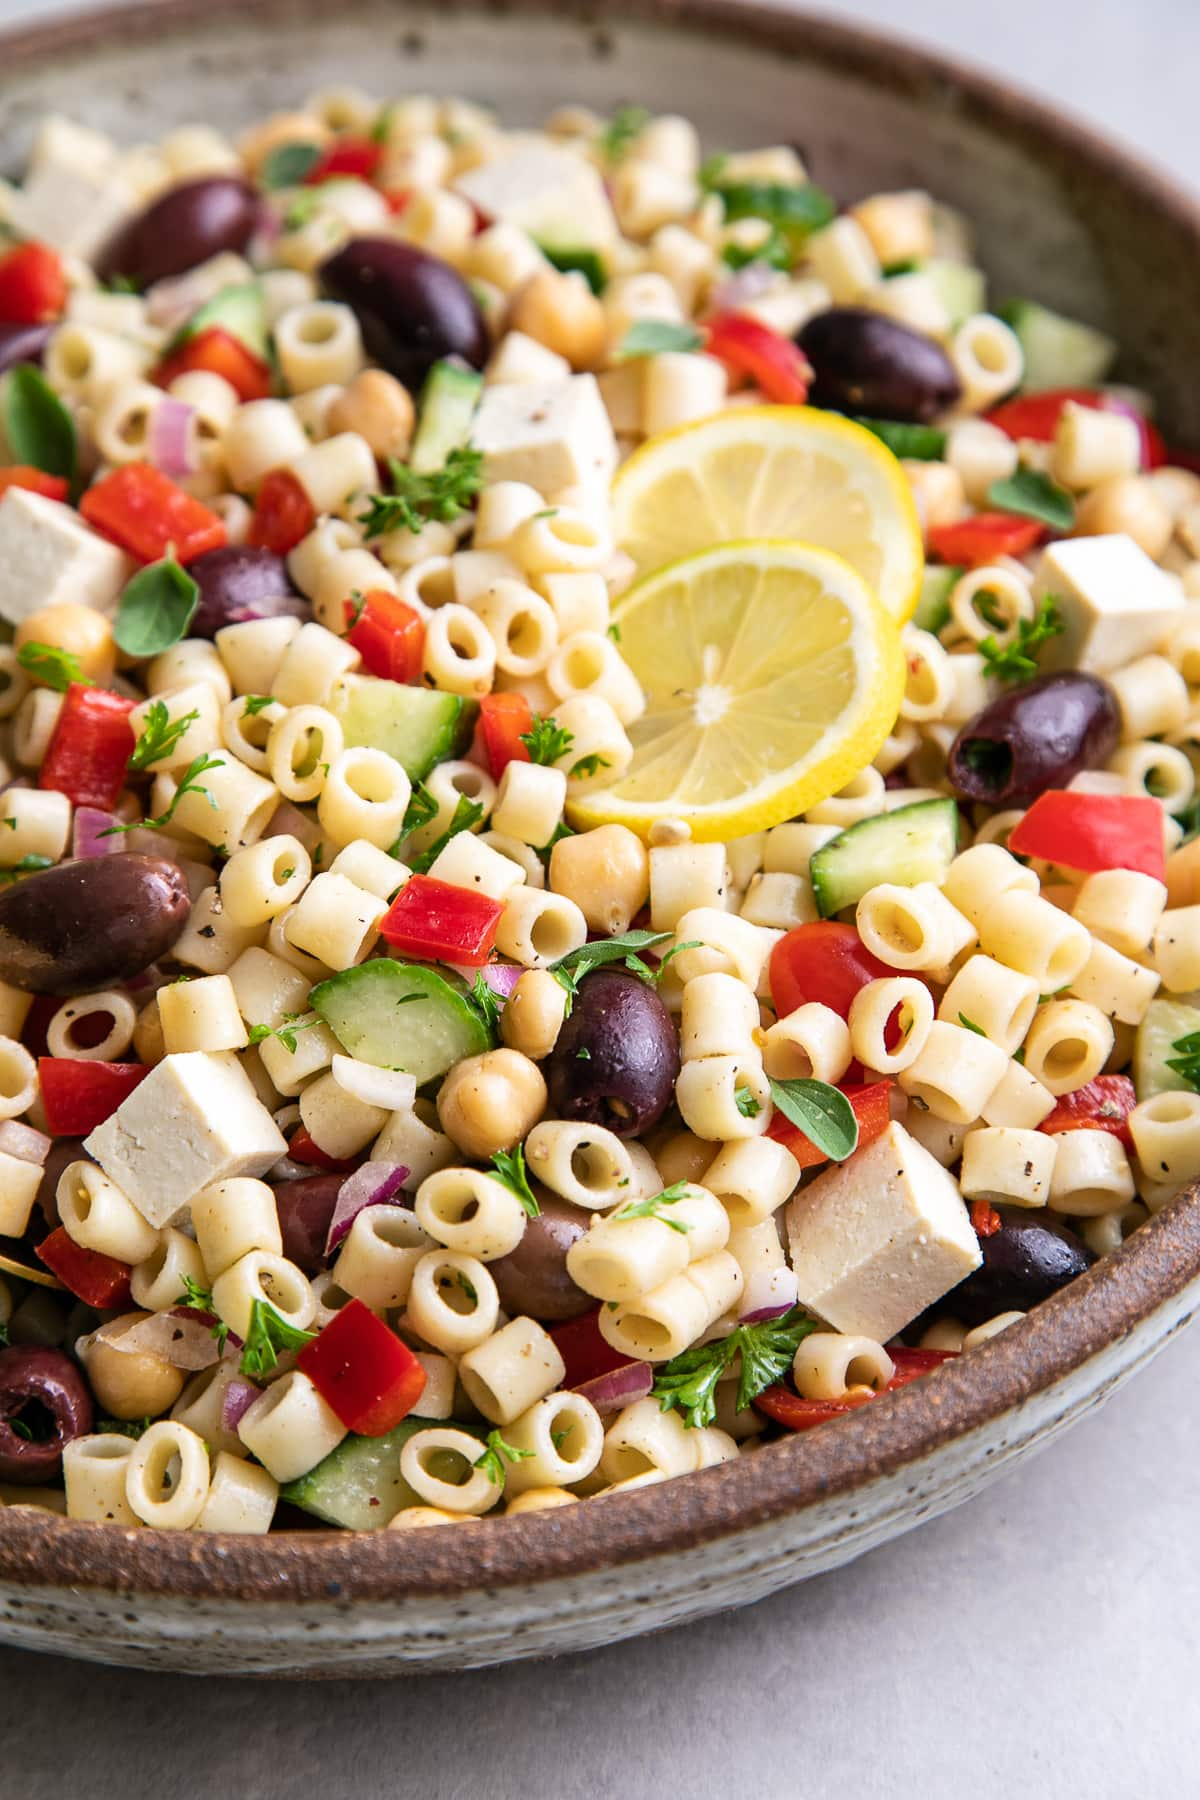 side angle view of healthy, vegan Greek pasta salad in a serving bowl with gold serving spoon.